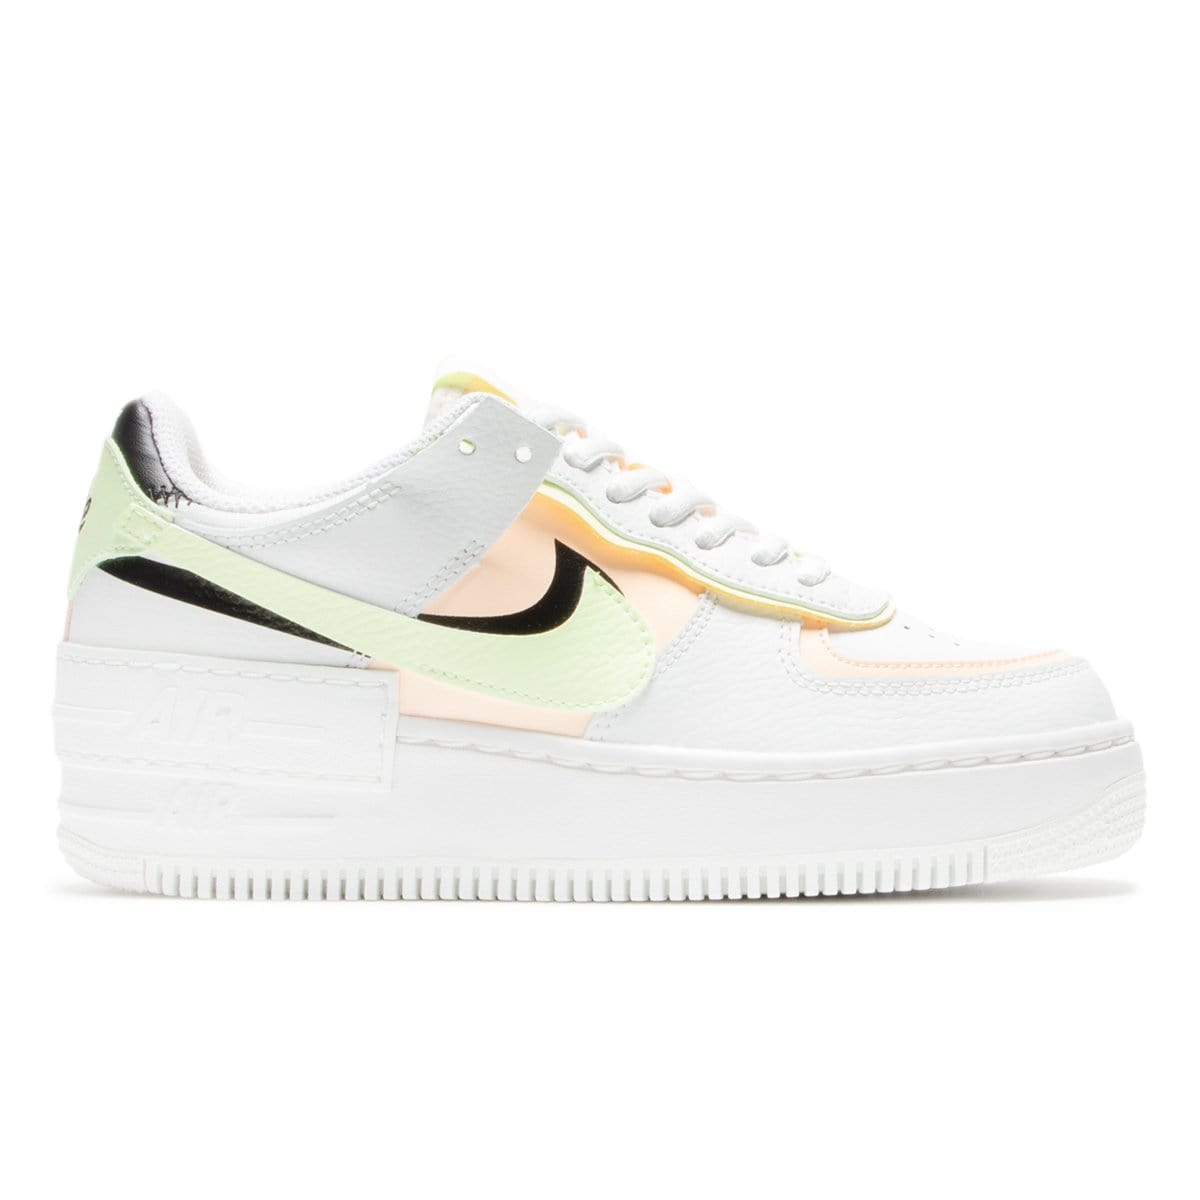 Women S Air Force 1 Shadow Ci0919 107 Or 4 payments of aud $51.75 with afterpay info. women s air force 1 shadow ci0919 107